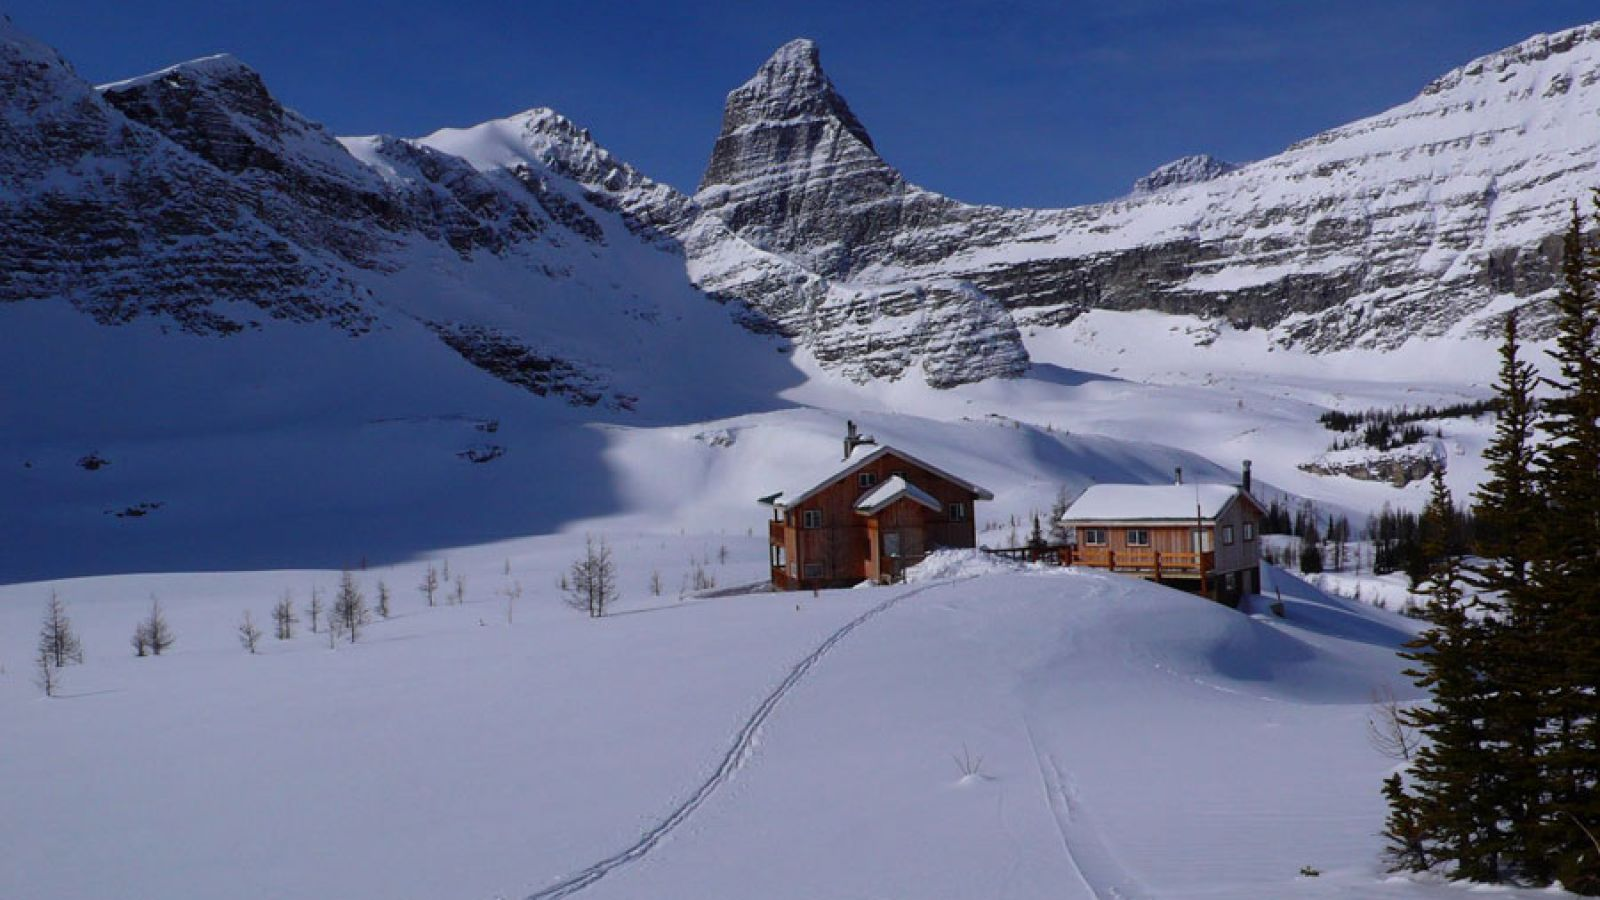 Open summer and winter, nestled in an alpine setting.